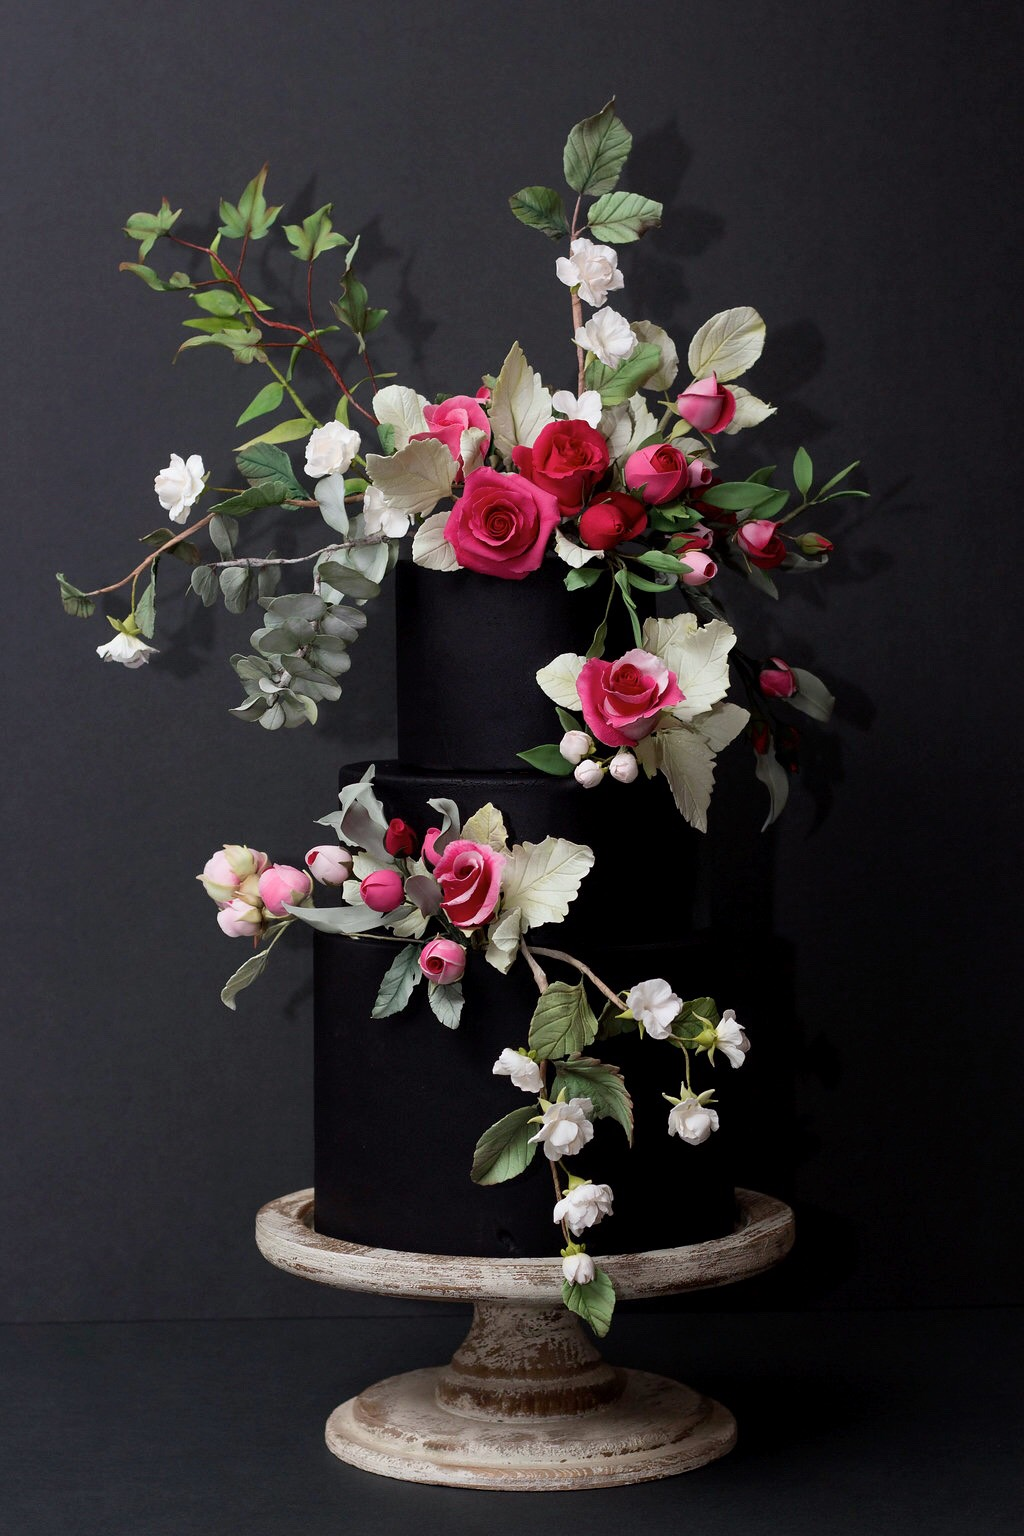 Black wedding cake with bouquet of sugar flowers